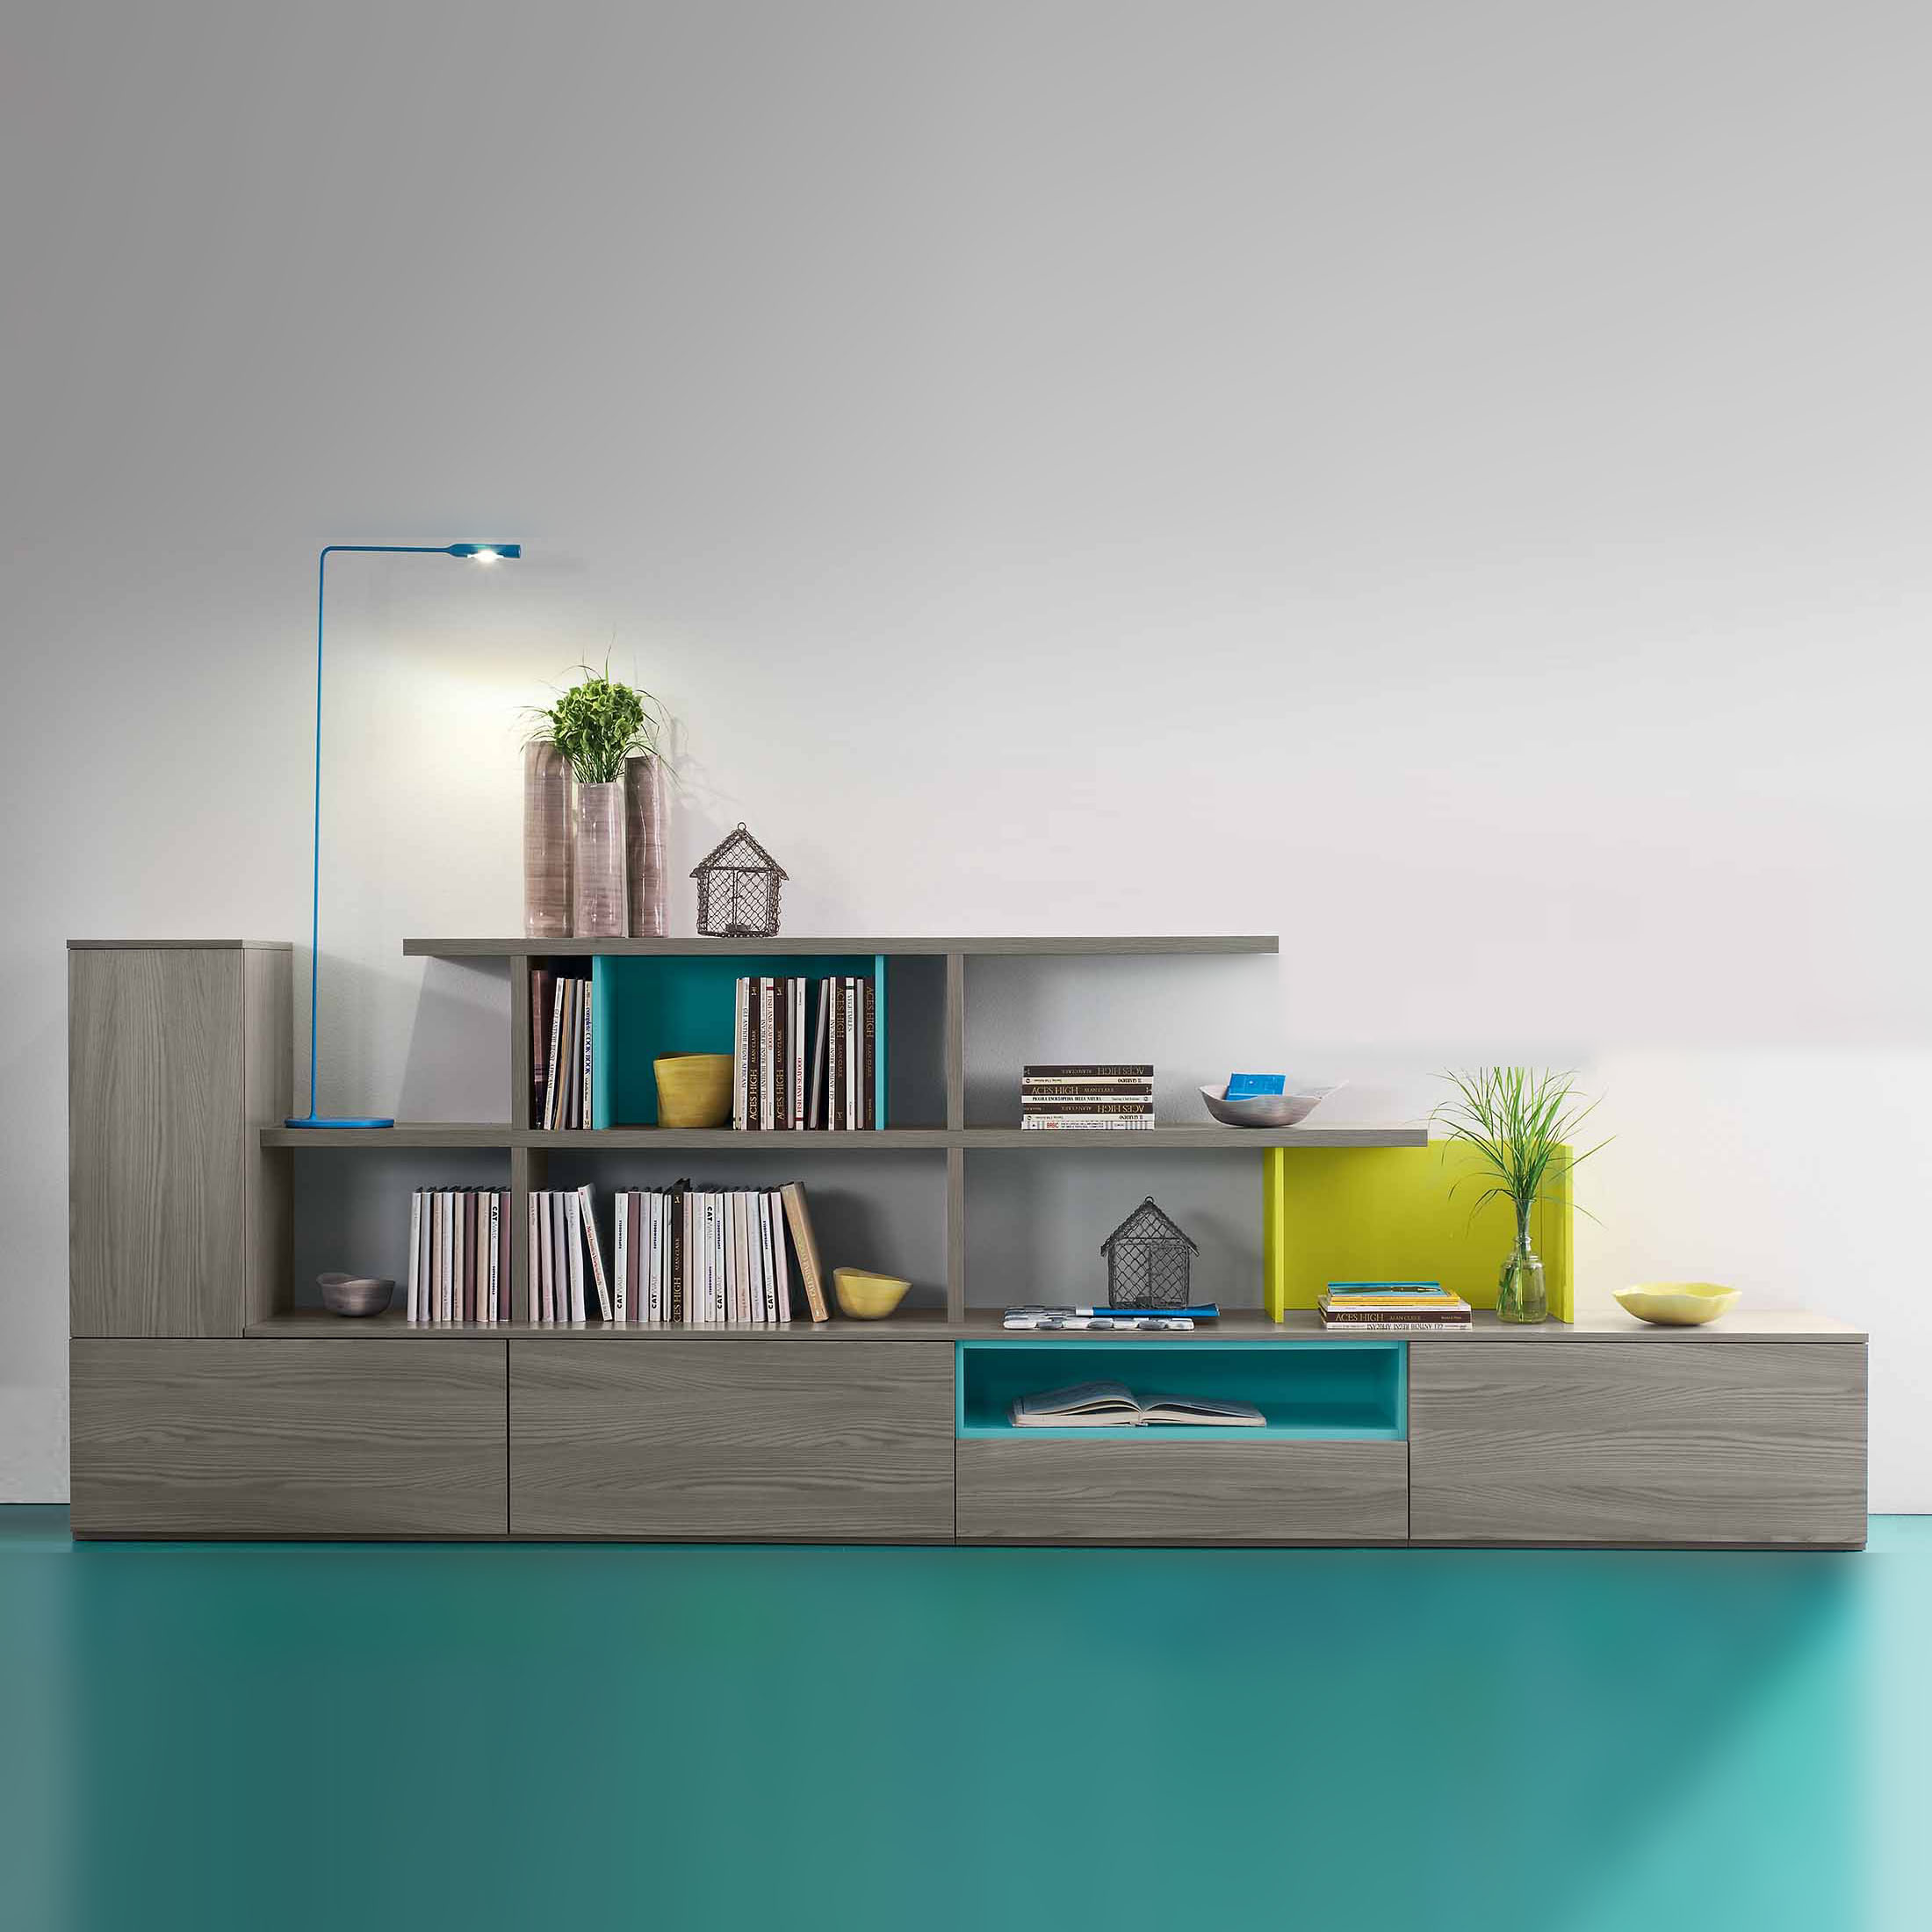 italian-contemporary-furniture-loto-flowers-free-standing-tv-unit-media-stand-lounge-living-room-by-mobilstella.jpg